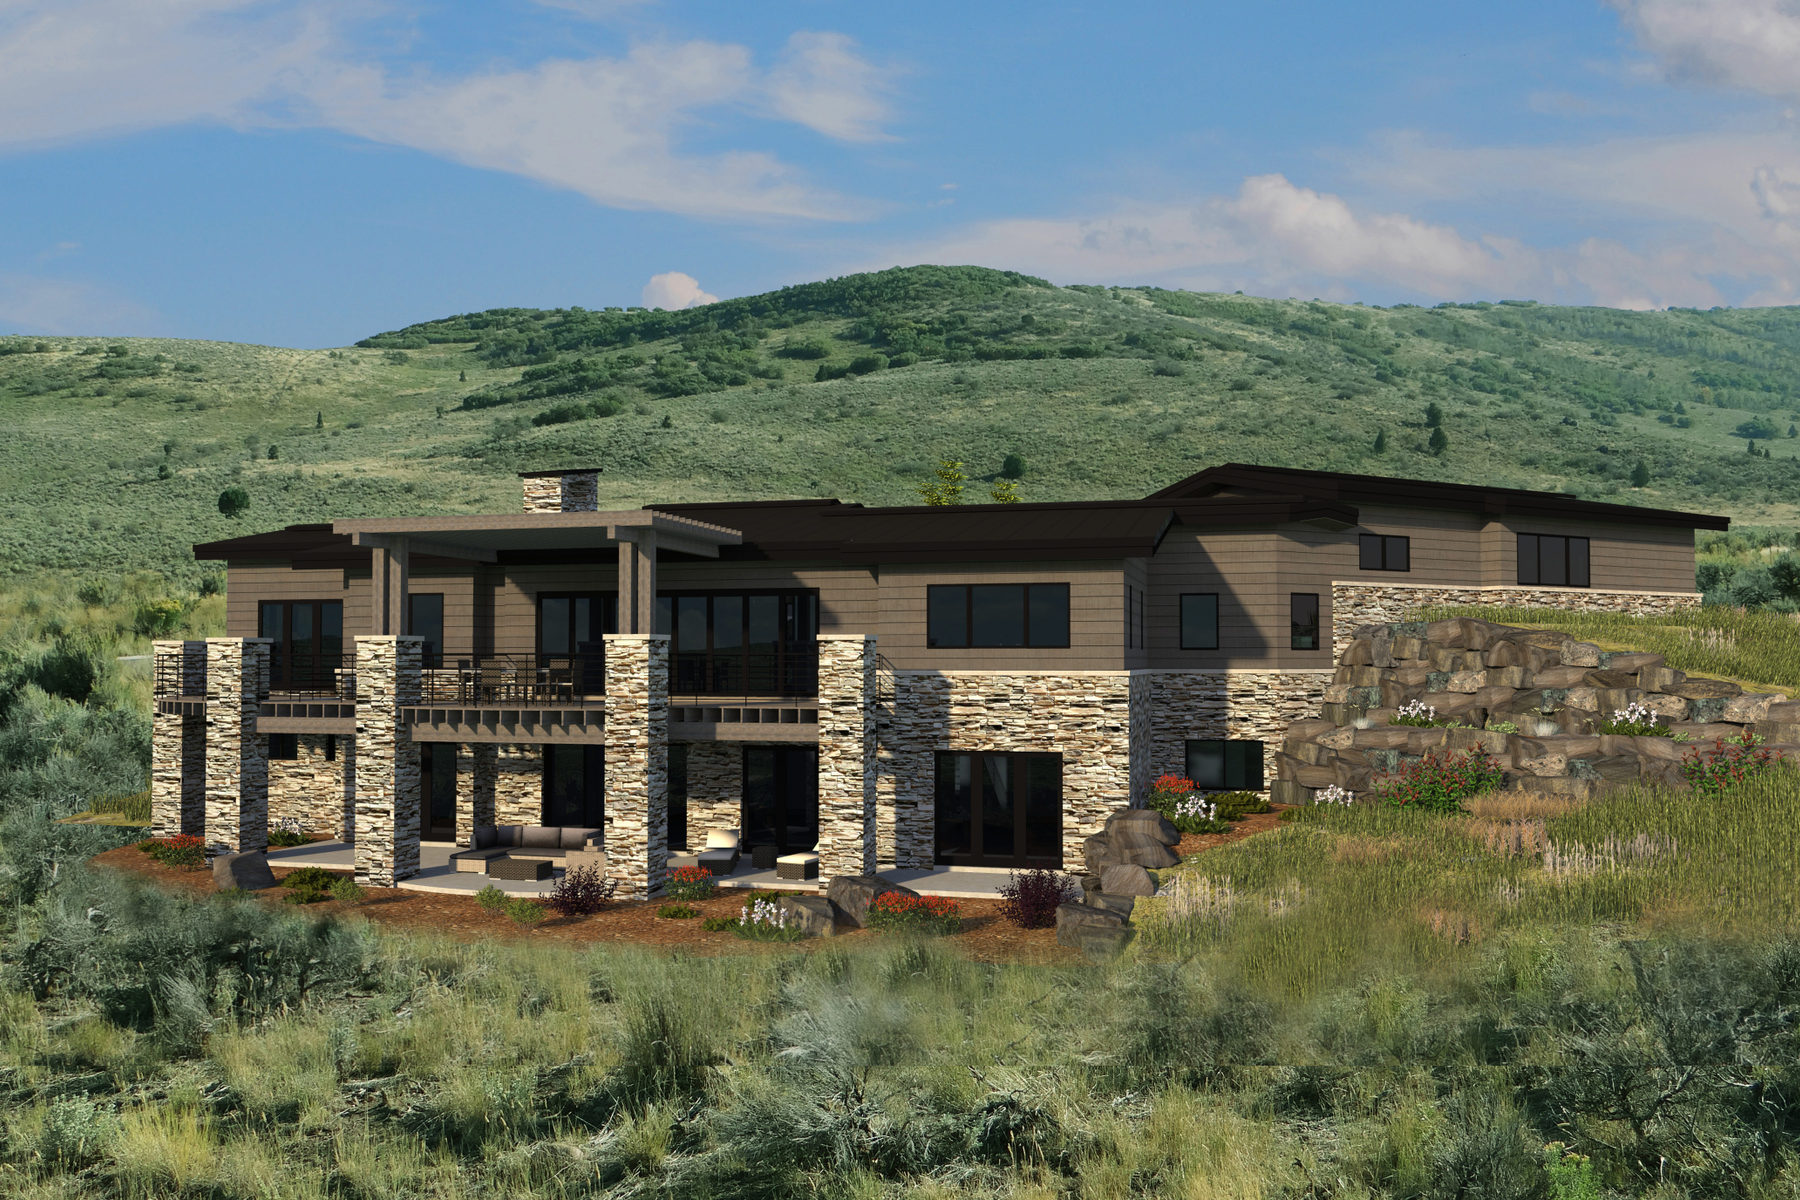 Casa Unifamiliar por un Venta en New Construction Mountain Modern meets the Western Dream 5950 Caddis Cir Heber City, Utah, 84032 Estados Unidos